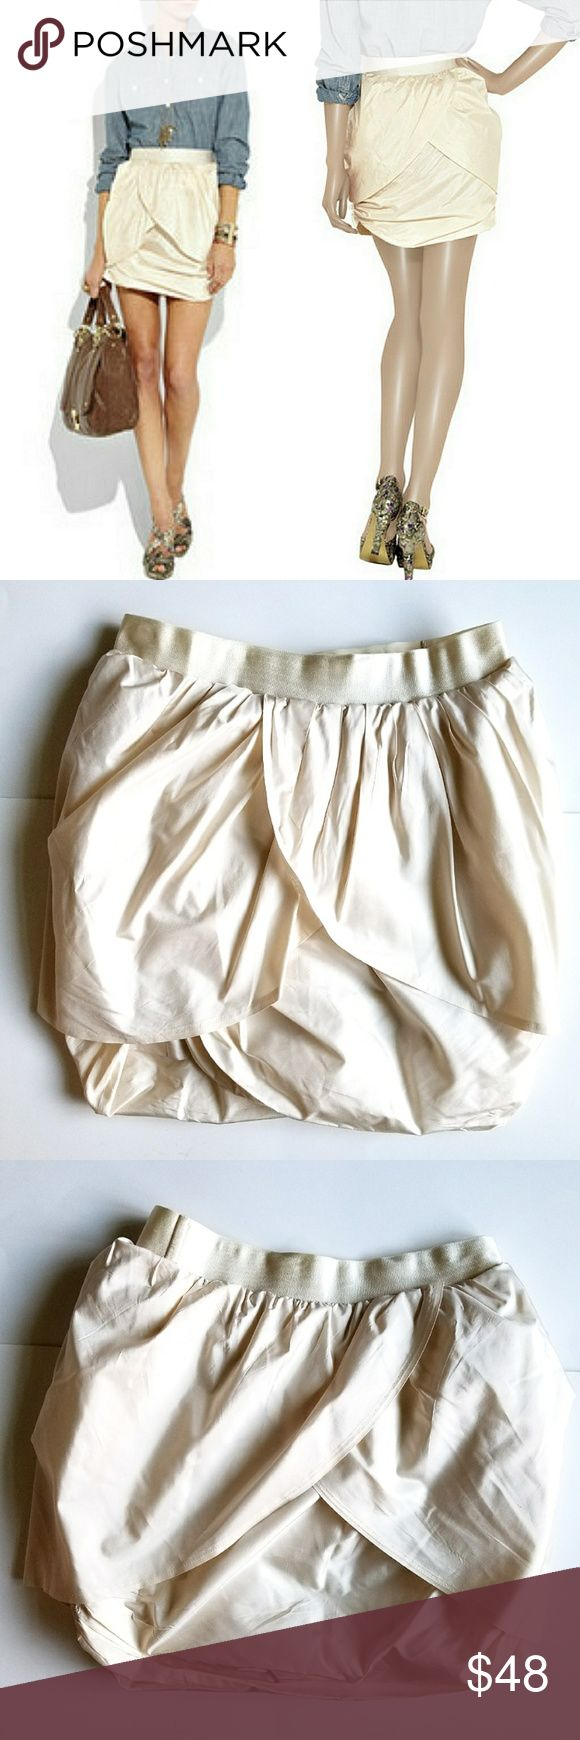 """J.Crew Silk Taffeta Tulip Skirt Gorgeous skirt in ivory silk taffeta. Double layered, elastic waistband. Can dress it up or down, one of a kind. 15"""" waist,  21"""" hips, 17"""" long. In excellent LIKE NEW condition. J. Crew Skirts Mini"""